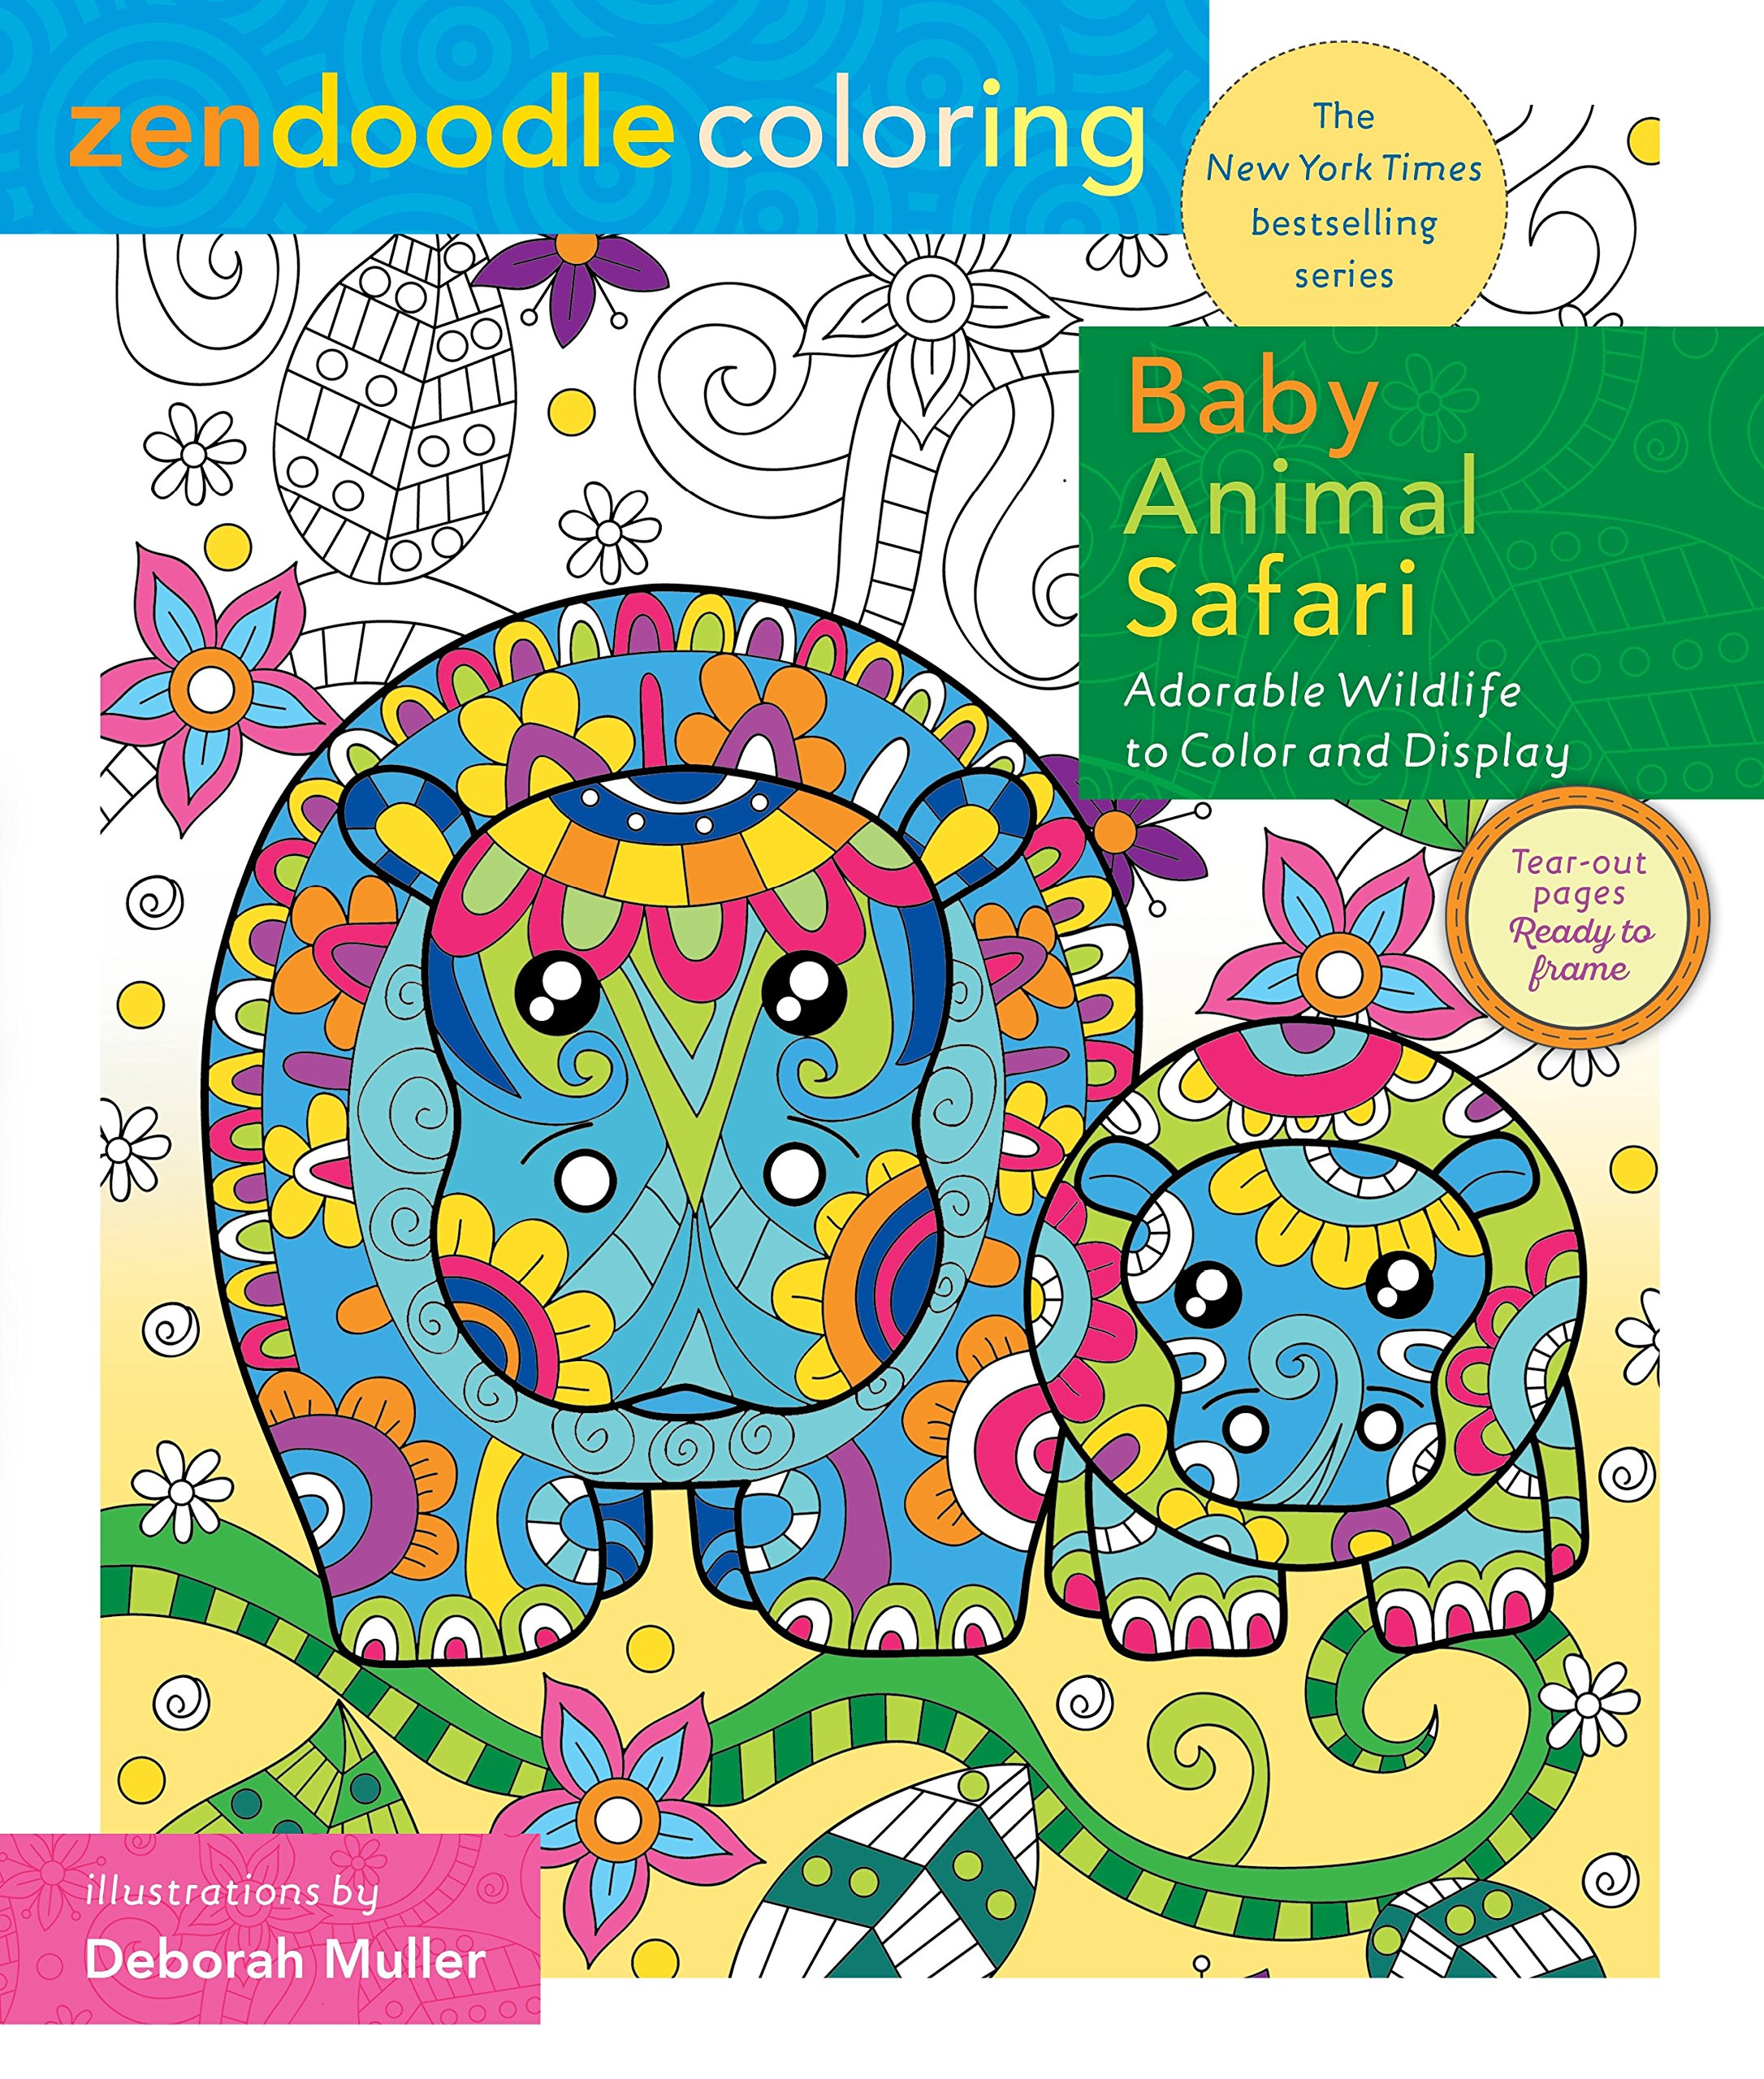 Amazon Zendoodle Coloring Baby Animal Safari Adorable Wildlife To Color And Display 9781250149138 Jeanette Wummel Books